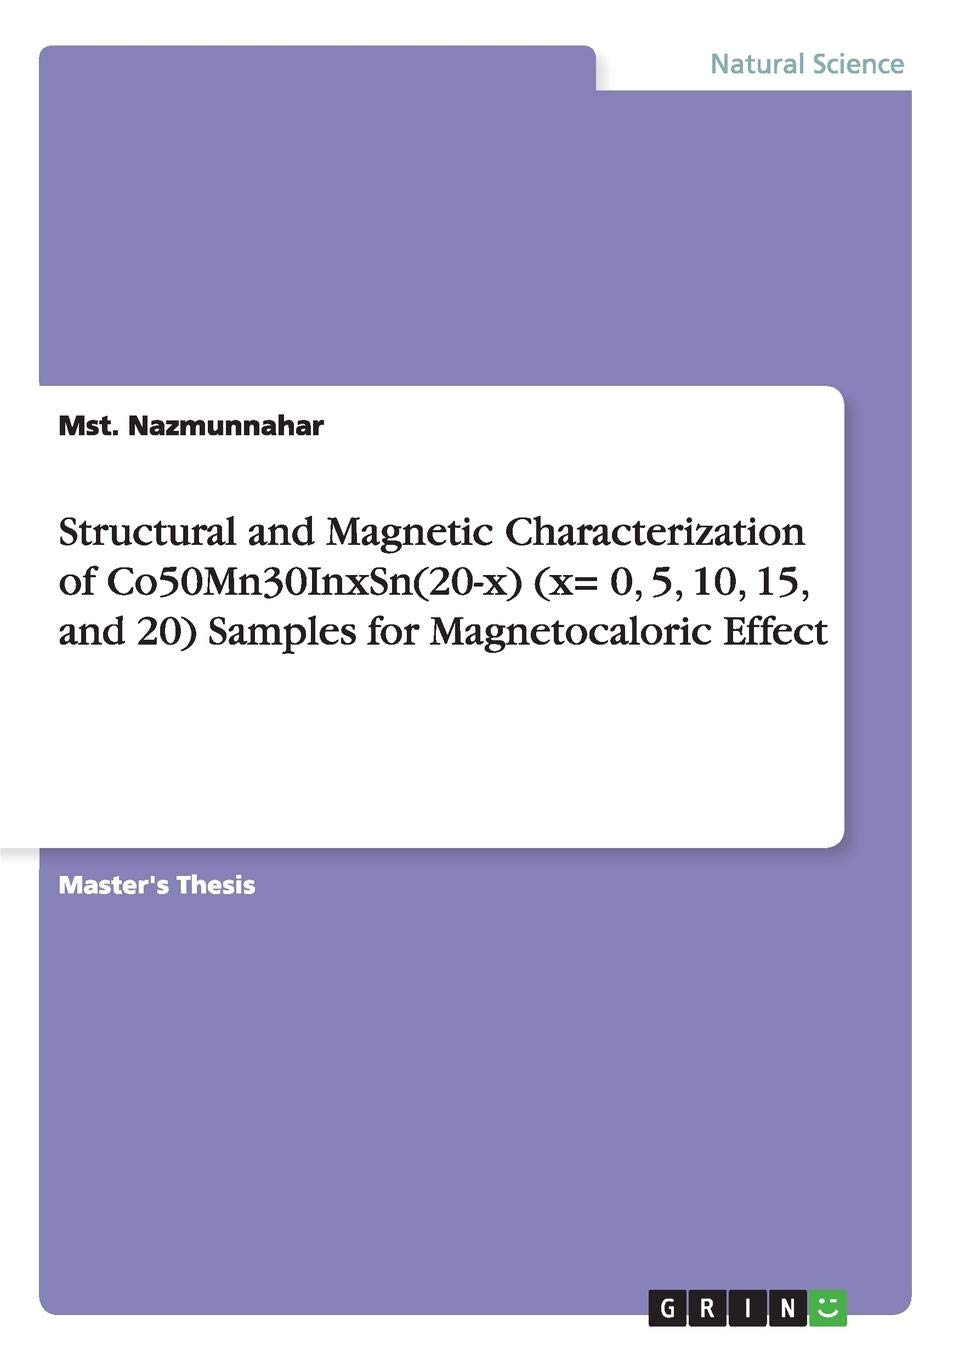 Structural and Magnetic Characterization of Co50Mn30InxSn 20-x x ...